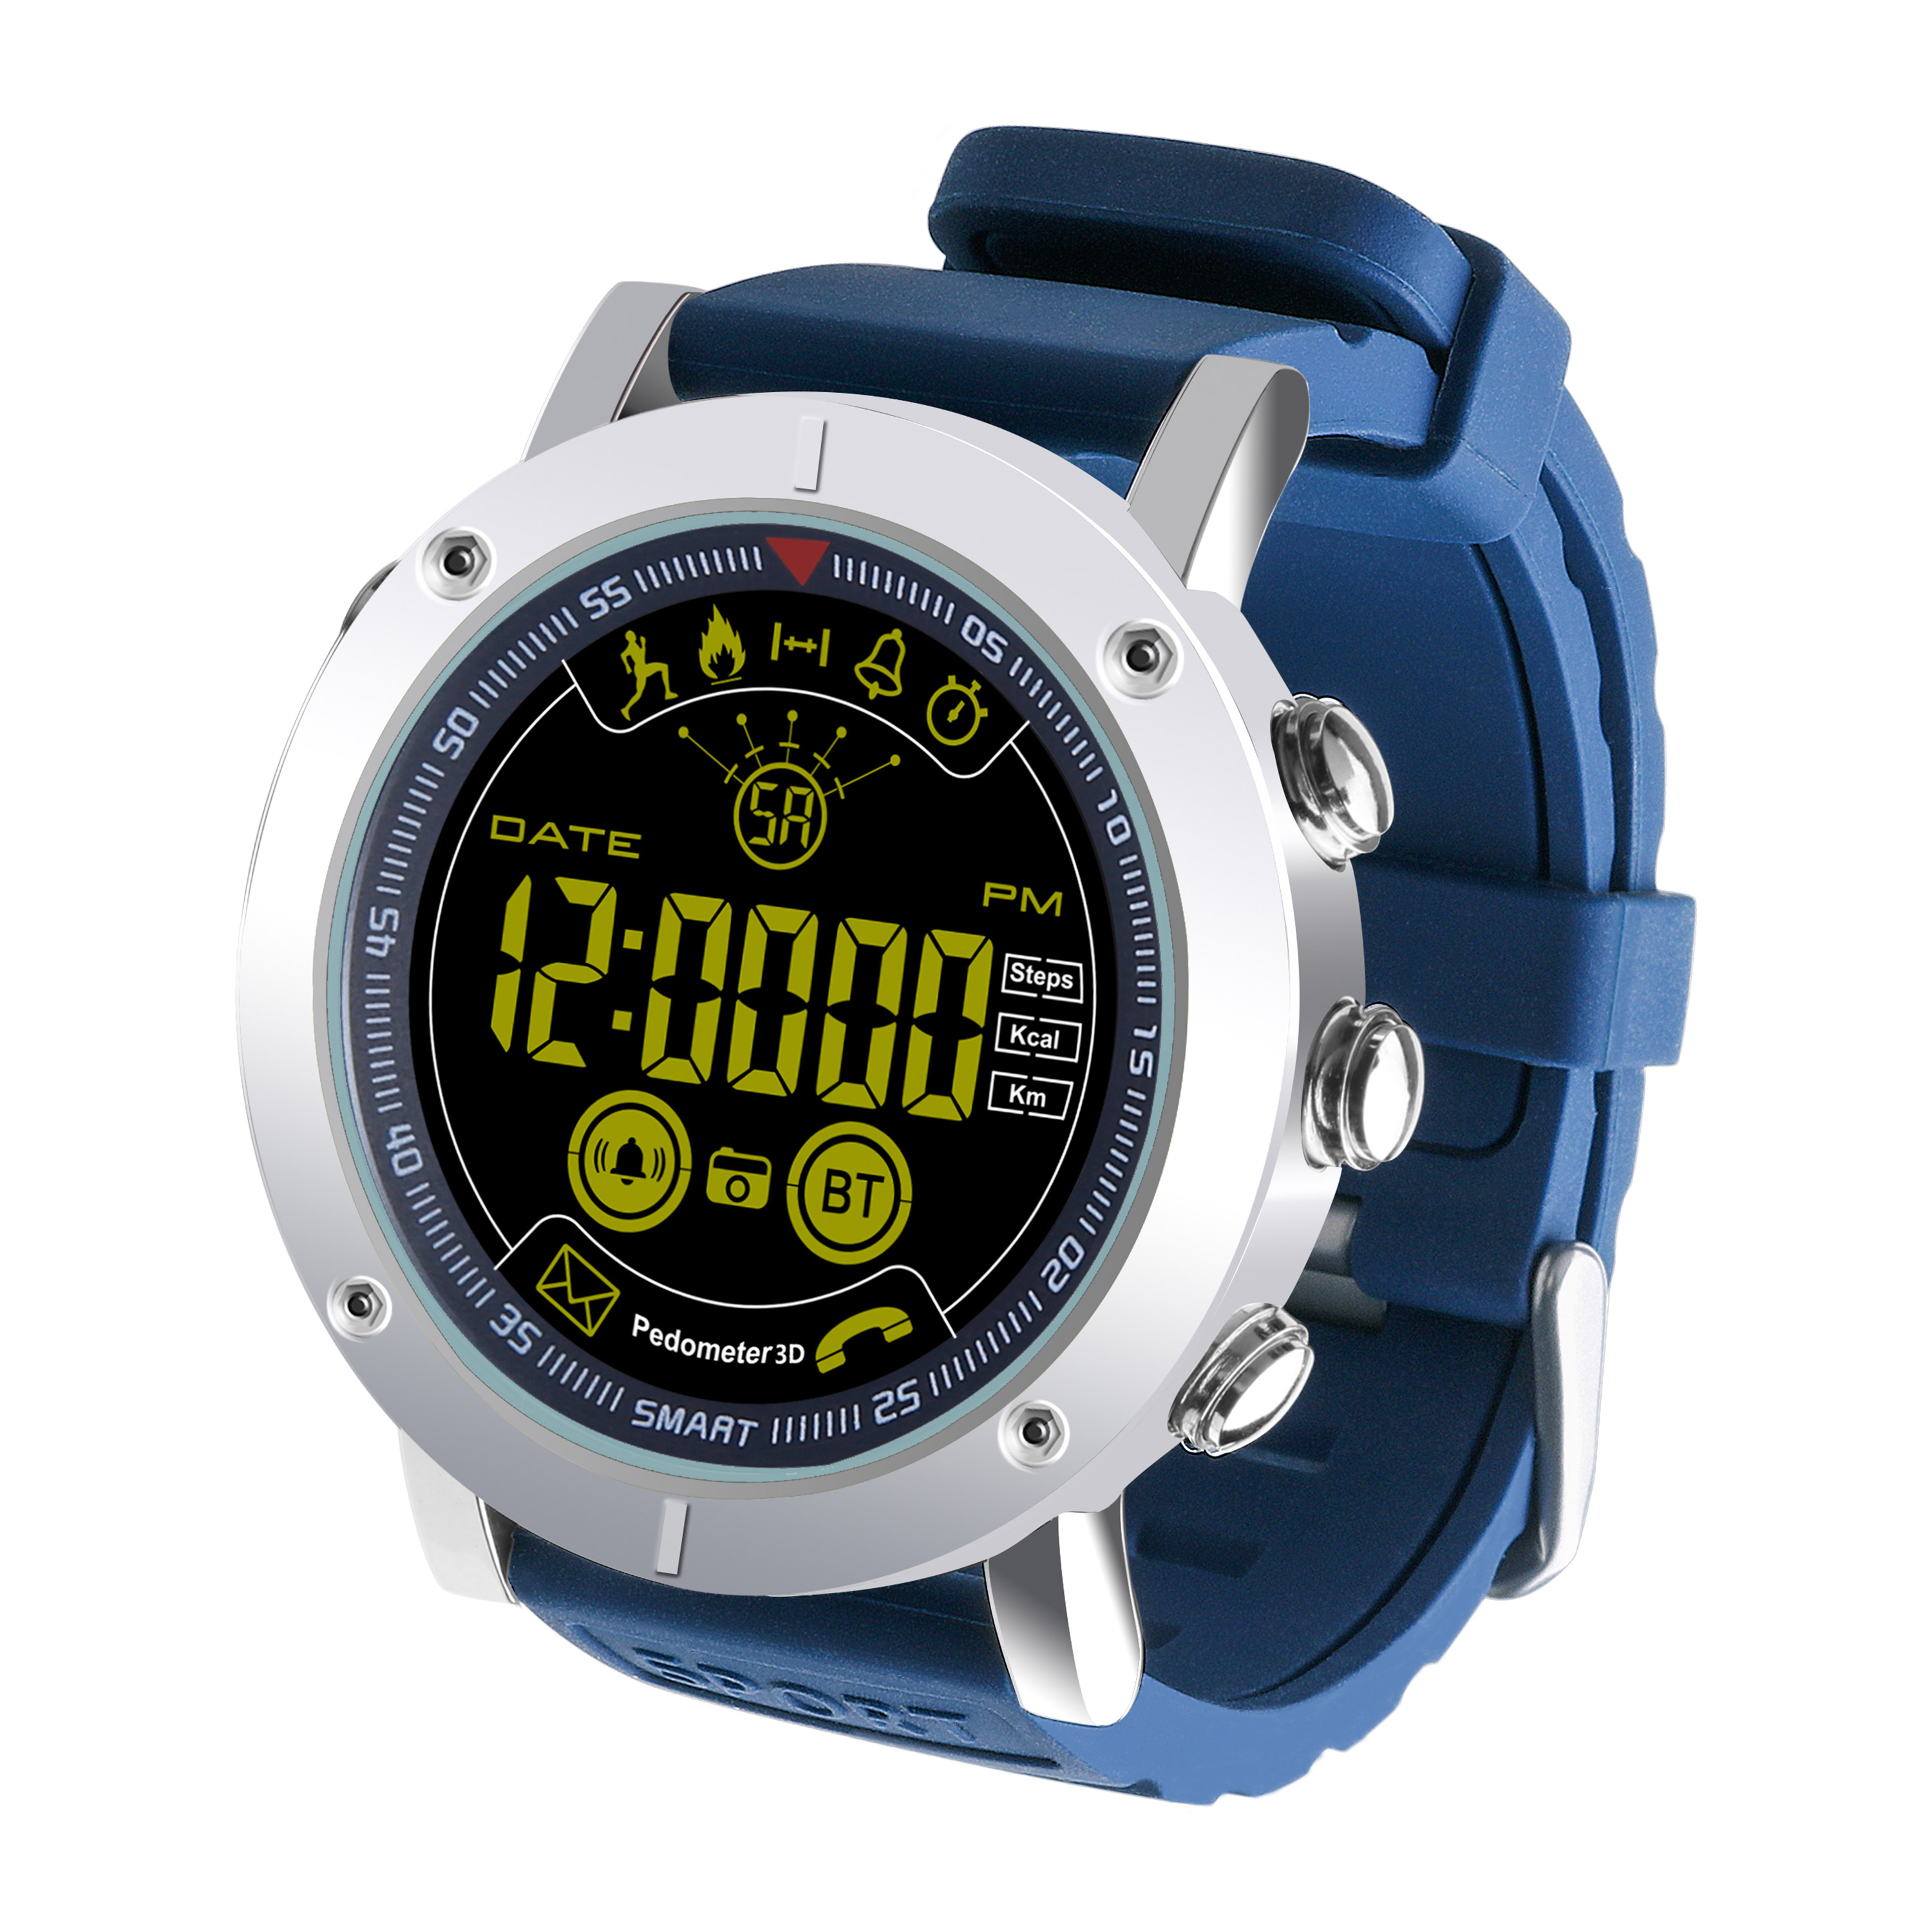 EX19 Smart Watch Fitness Tracker 5ATM Waterproof Swimming Call SMS Alert Sport Pedometer Smartwatch Stopwatch Smart Wristwatch